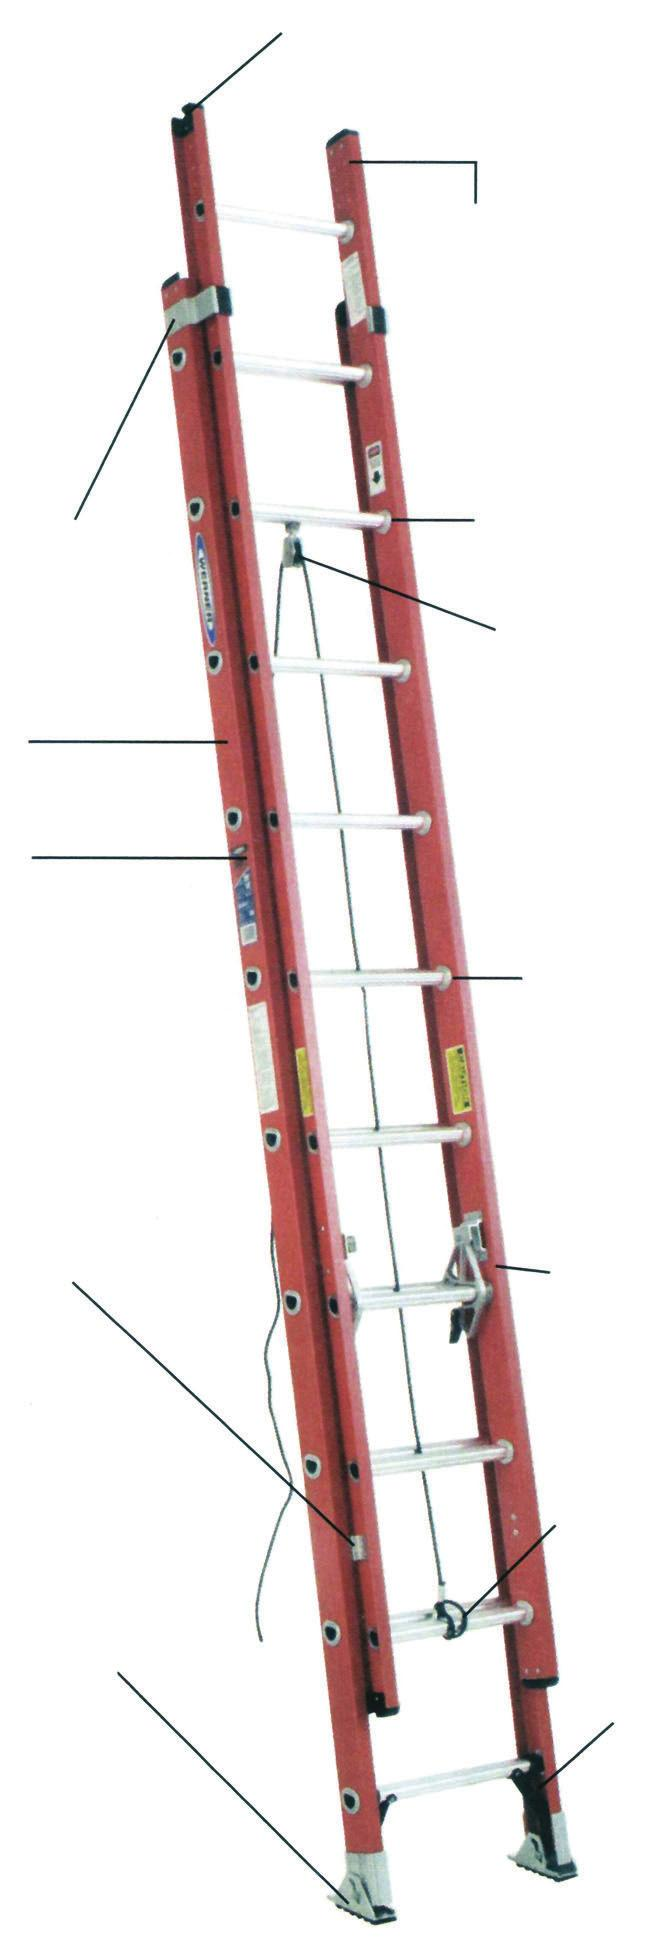 Phone: 800-227-4255 www.hallssafety.com Fax: 724-458-0592 FIBERGLASS D-RUNG EXTENSION LADDER/STRAIGHT LADDER M a r - r e s i s ta n t 300 Lbs. Load Capacity, Type 1A Duty Rating D6216-2* 36.